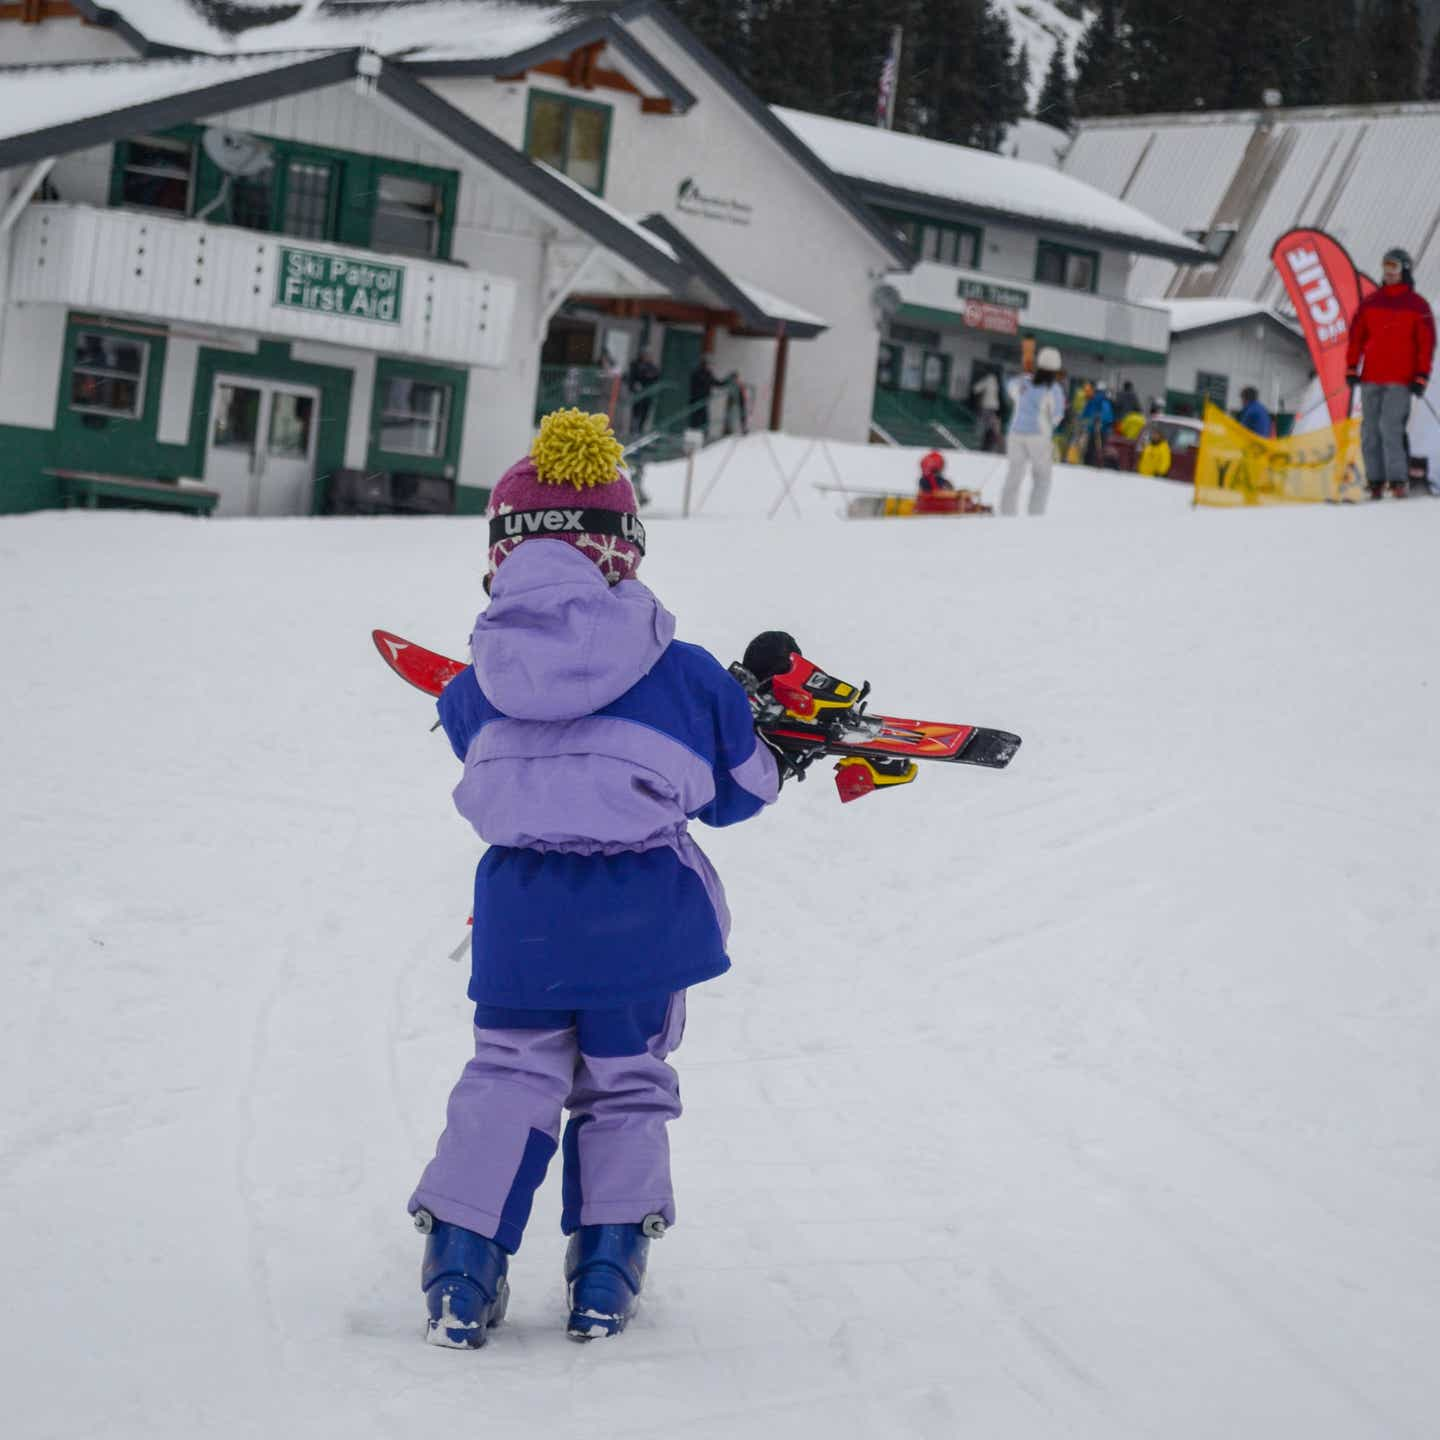 Jessica's daughter carries her skis to the slopes.